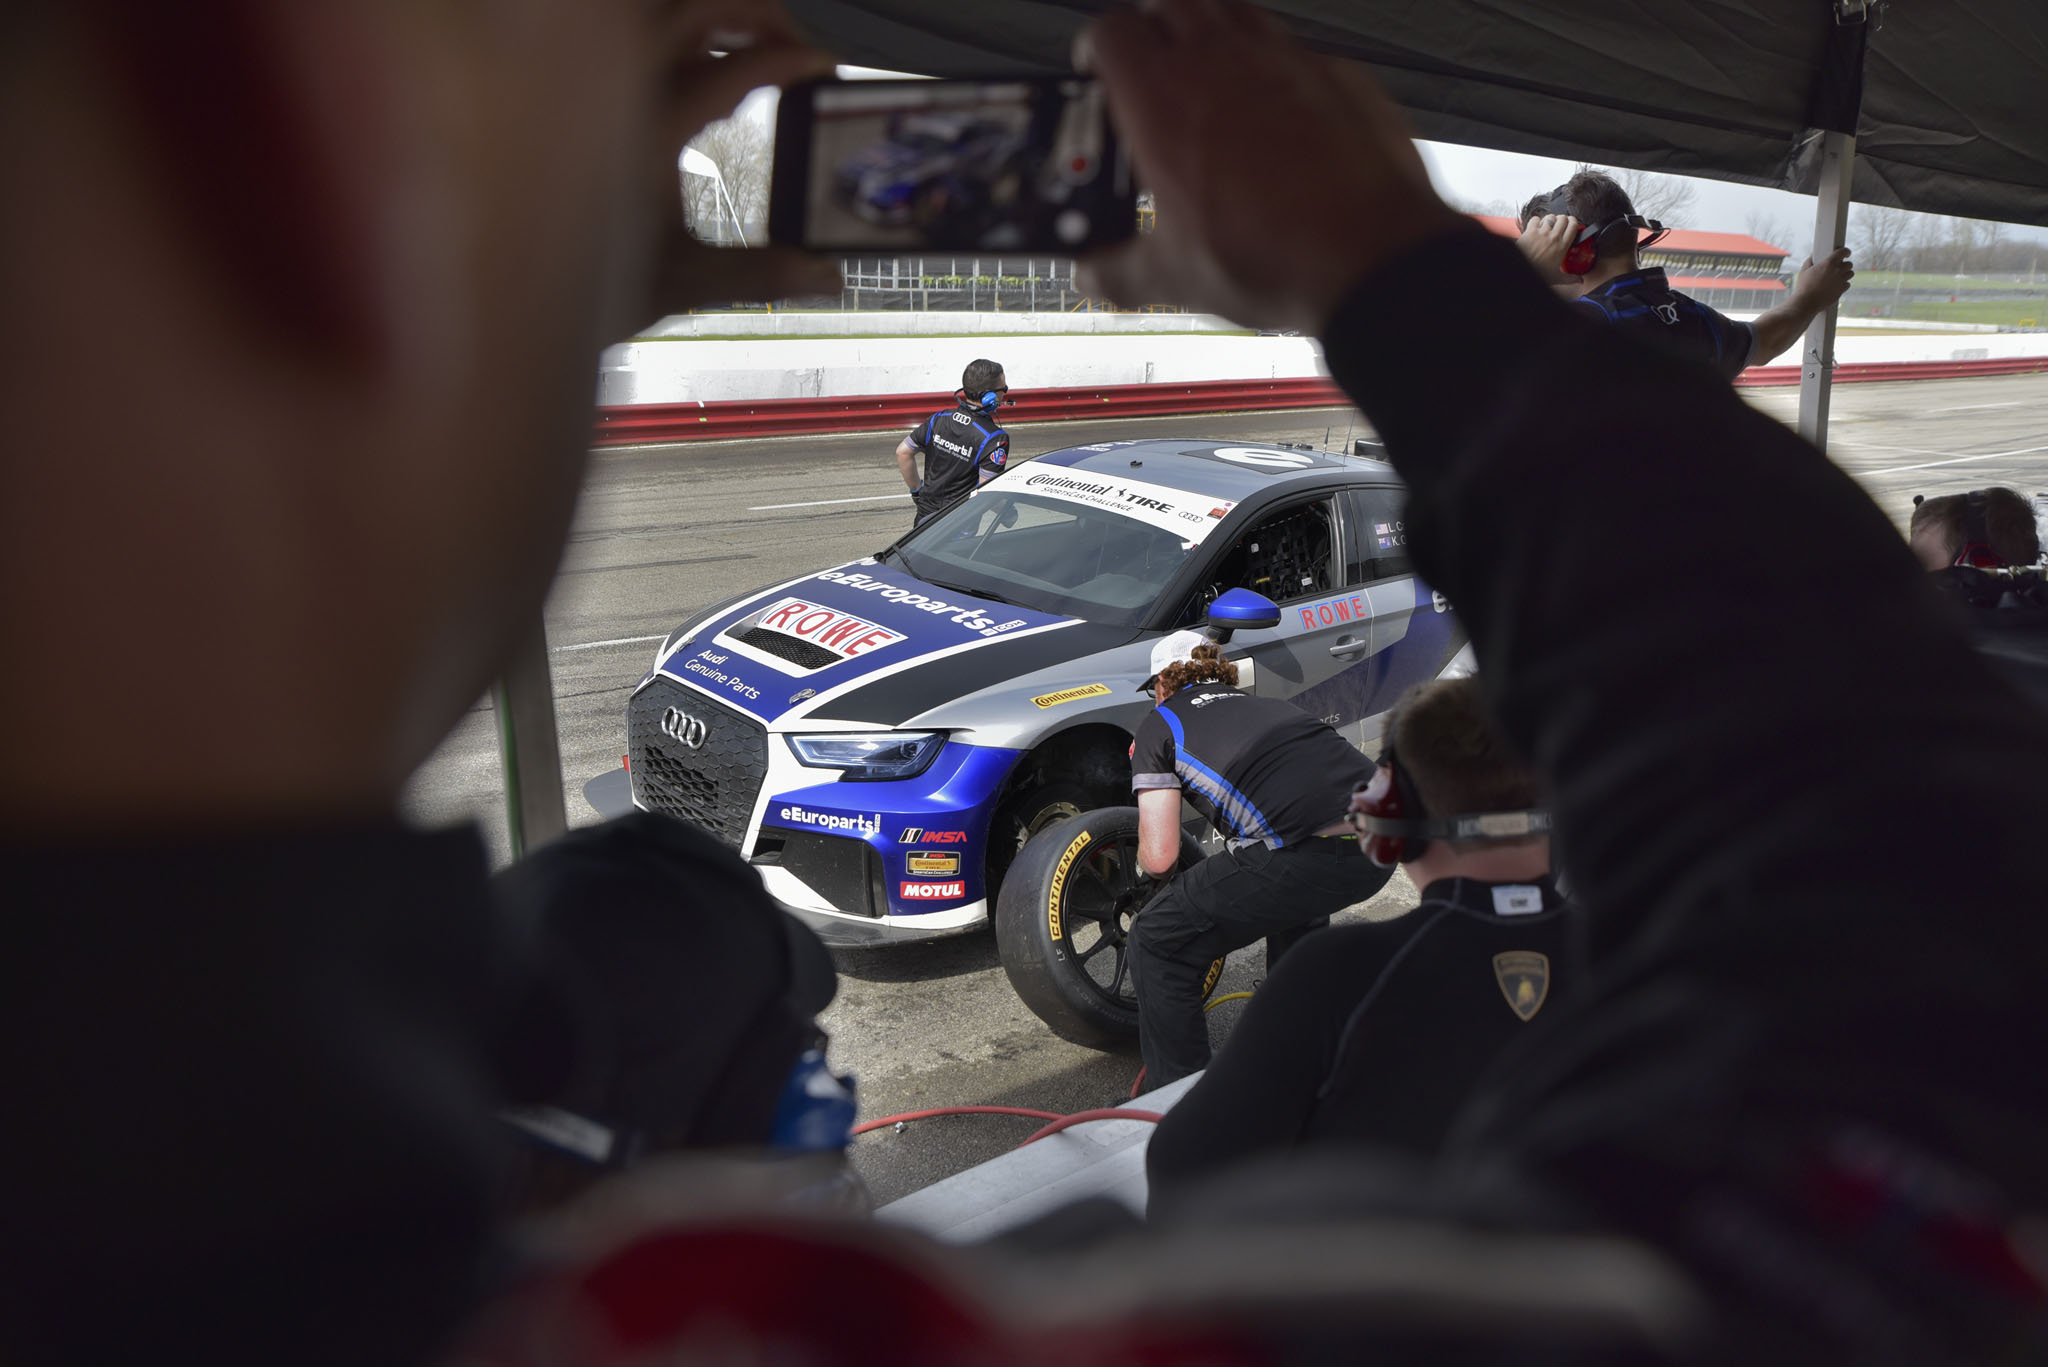 eEuroparts.com ROWE Racing Audi RS 3 LMS Practice Pit Stop